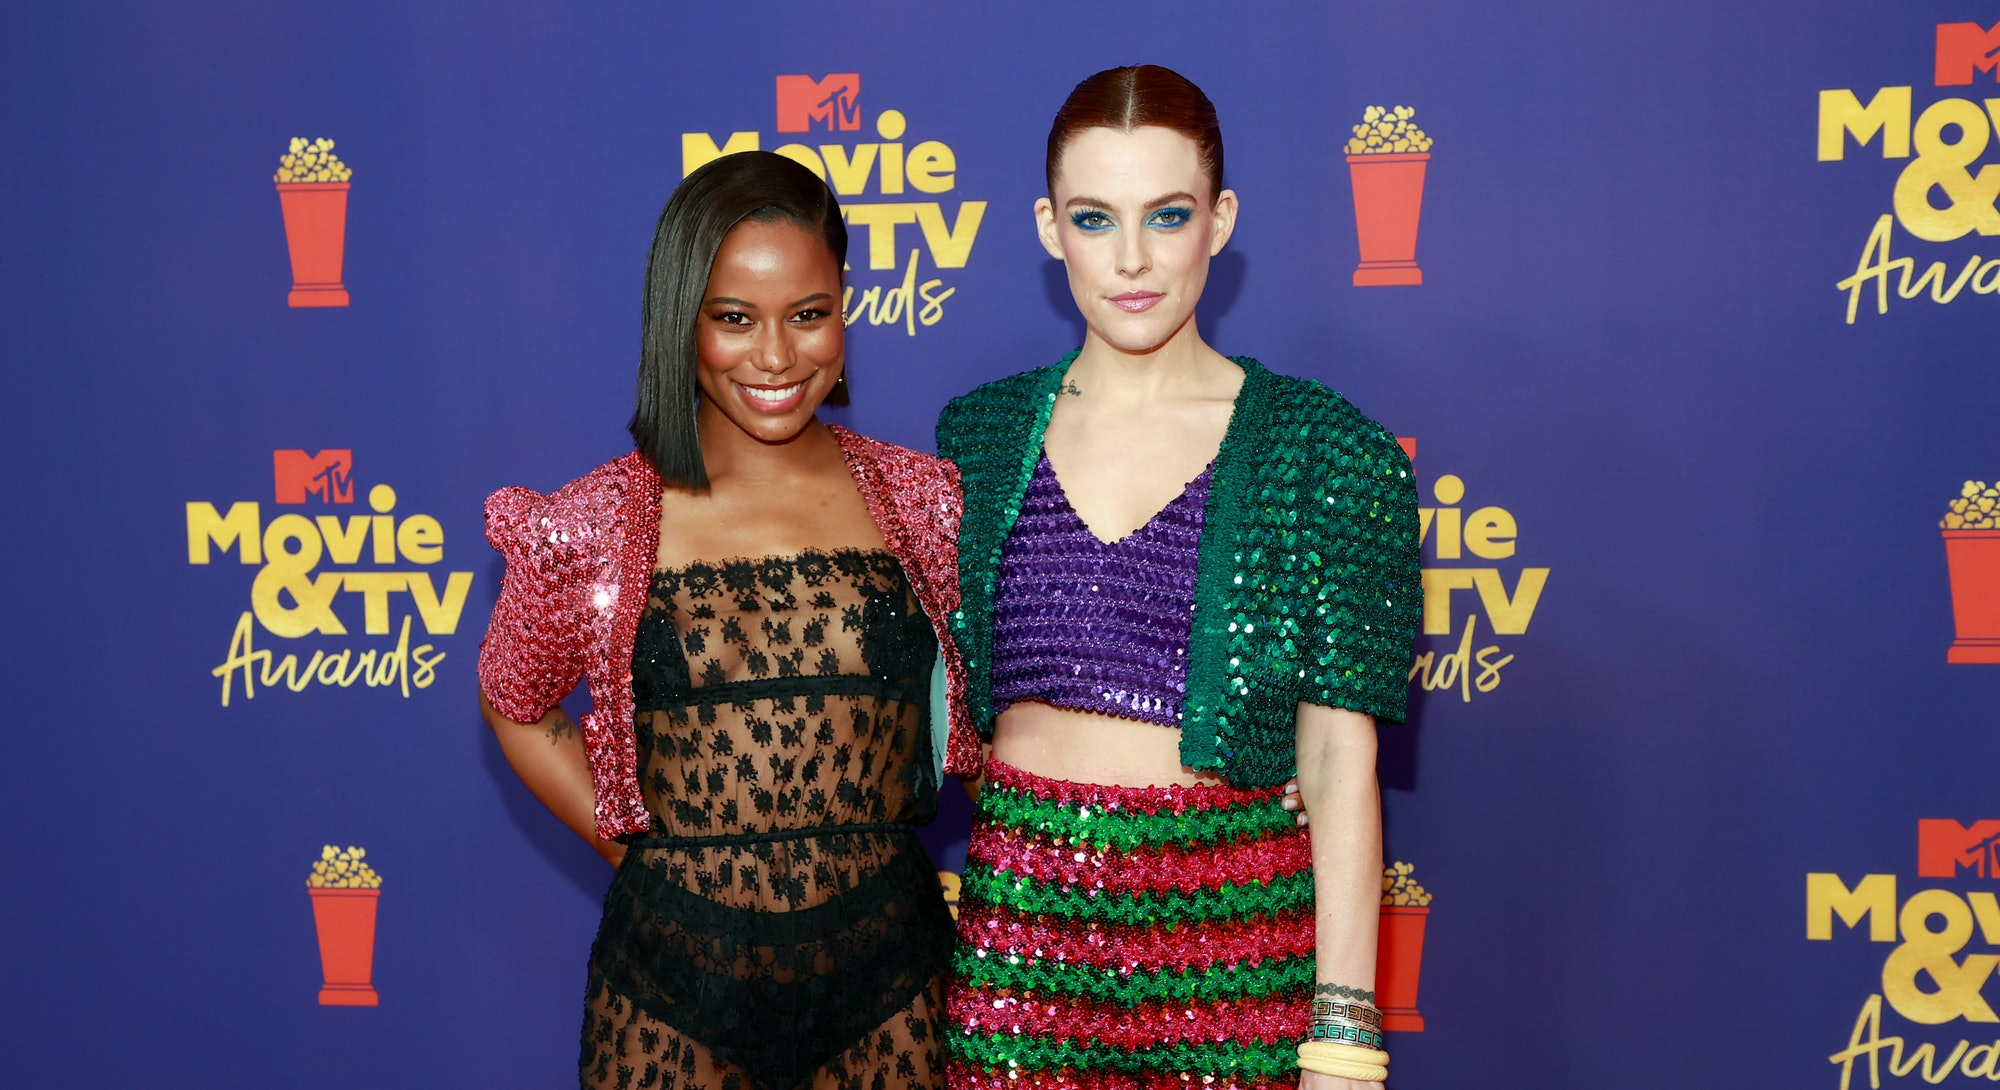 LOS ANGELES, CALIFORNIA - MAY 16: (EDITORS NOTE: Image contains nudity) (L-R) Taylour Paige and Rile...